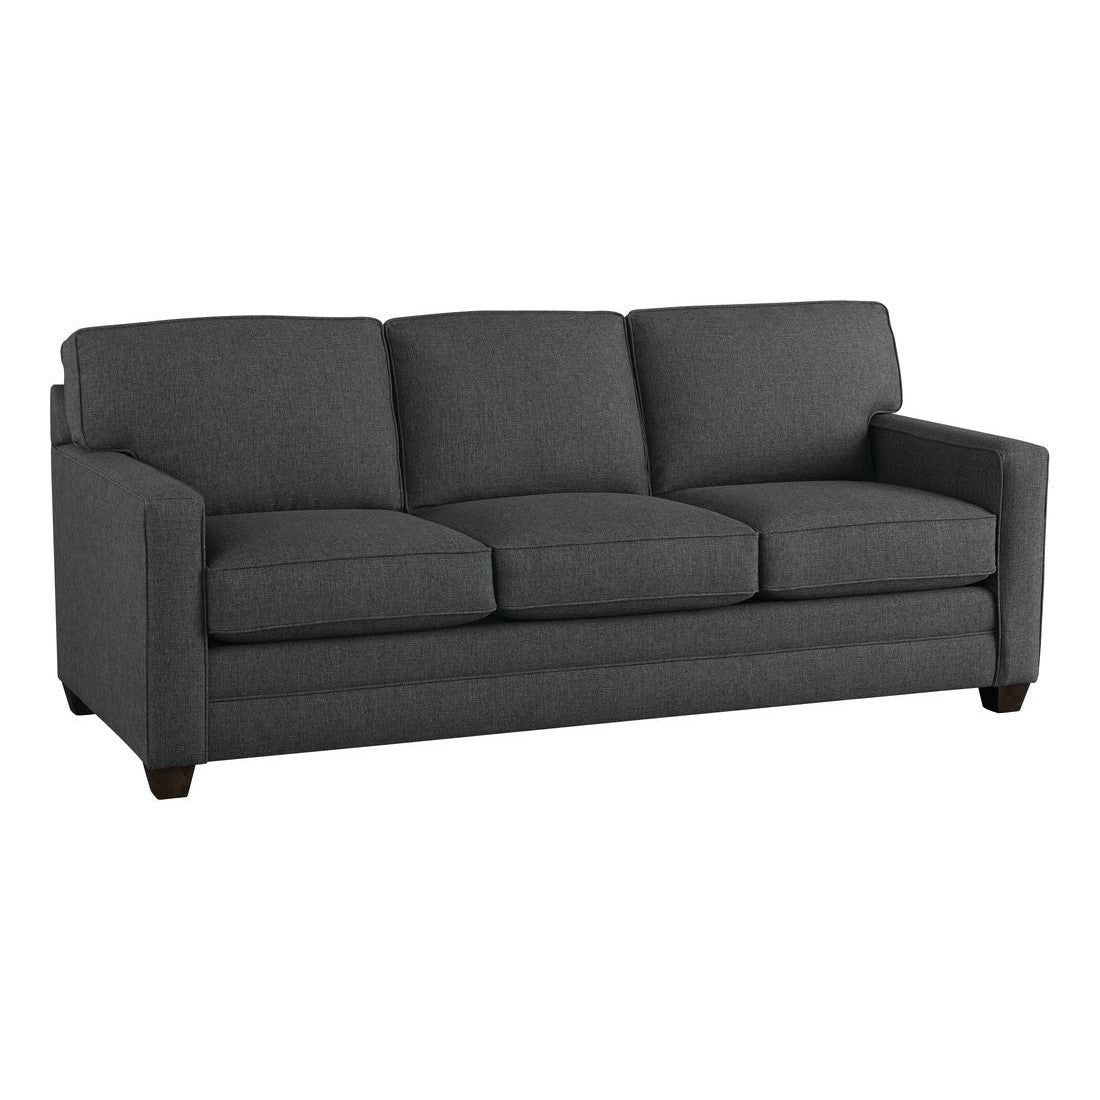 Alexander Large Track Arm Sofa